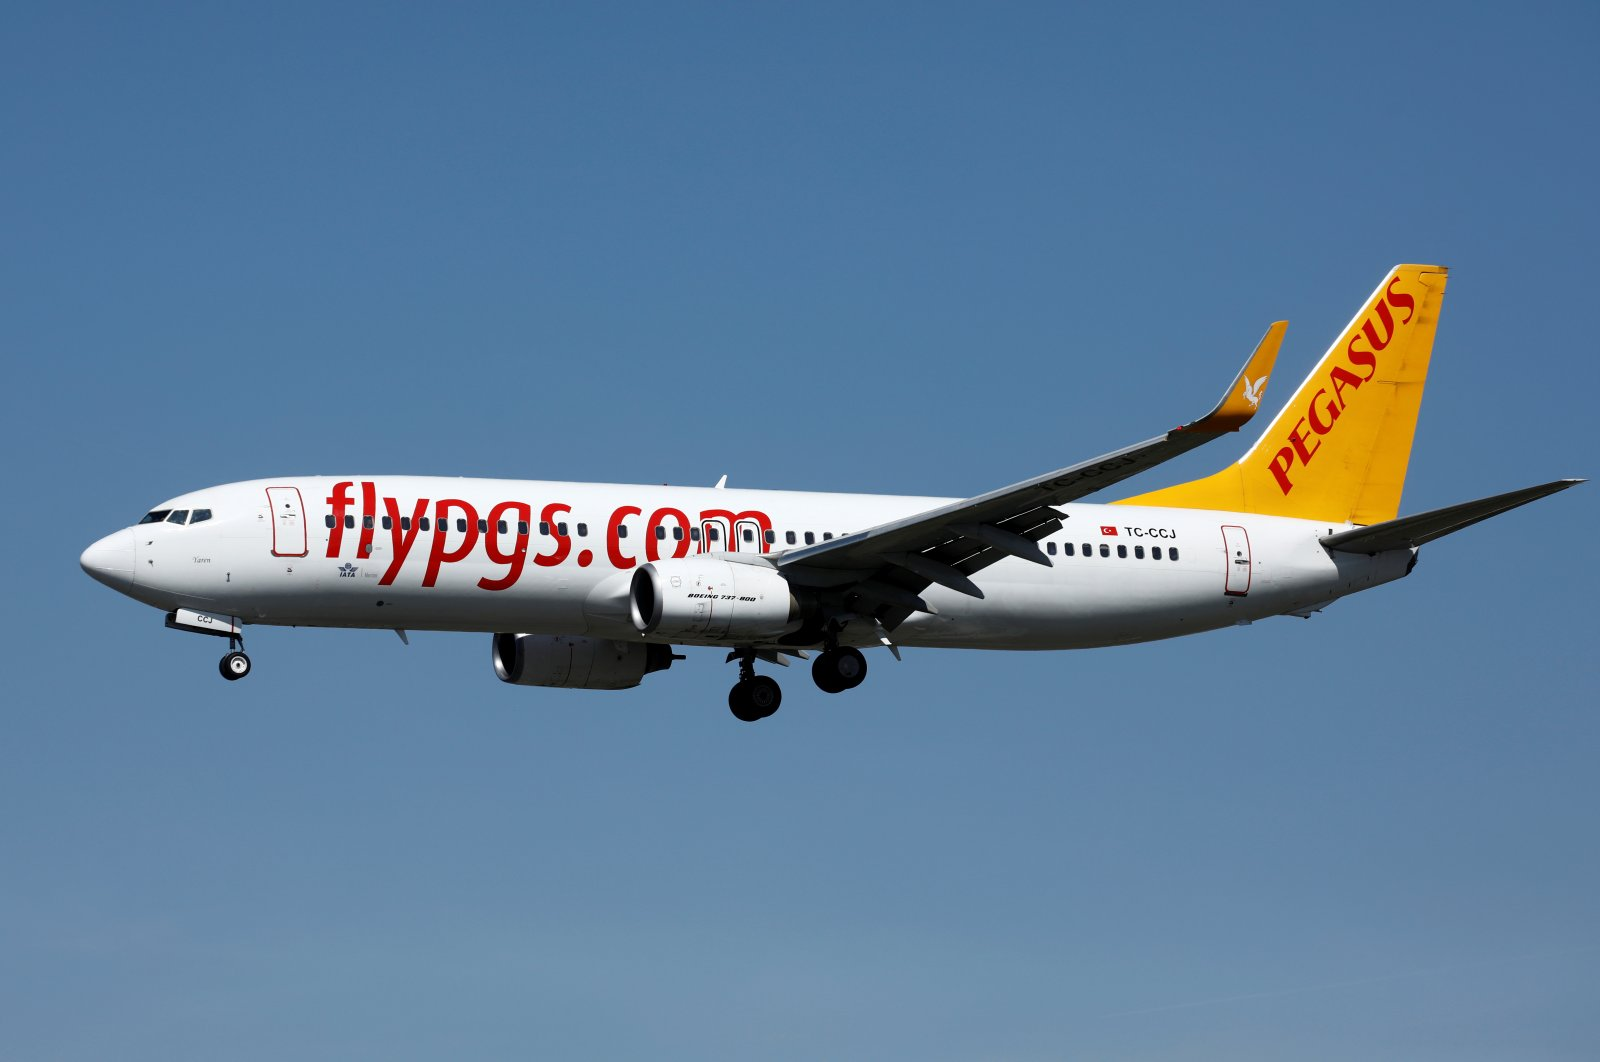 A Boeing 737-800 aircraft, operated by Pegasus Airlines, lands at Orly Airport near Paris, France, Sept. 6, 2019. (Reuters Photo)